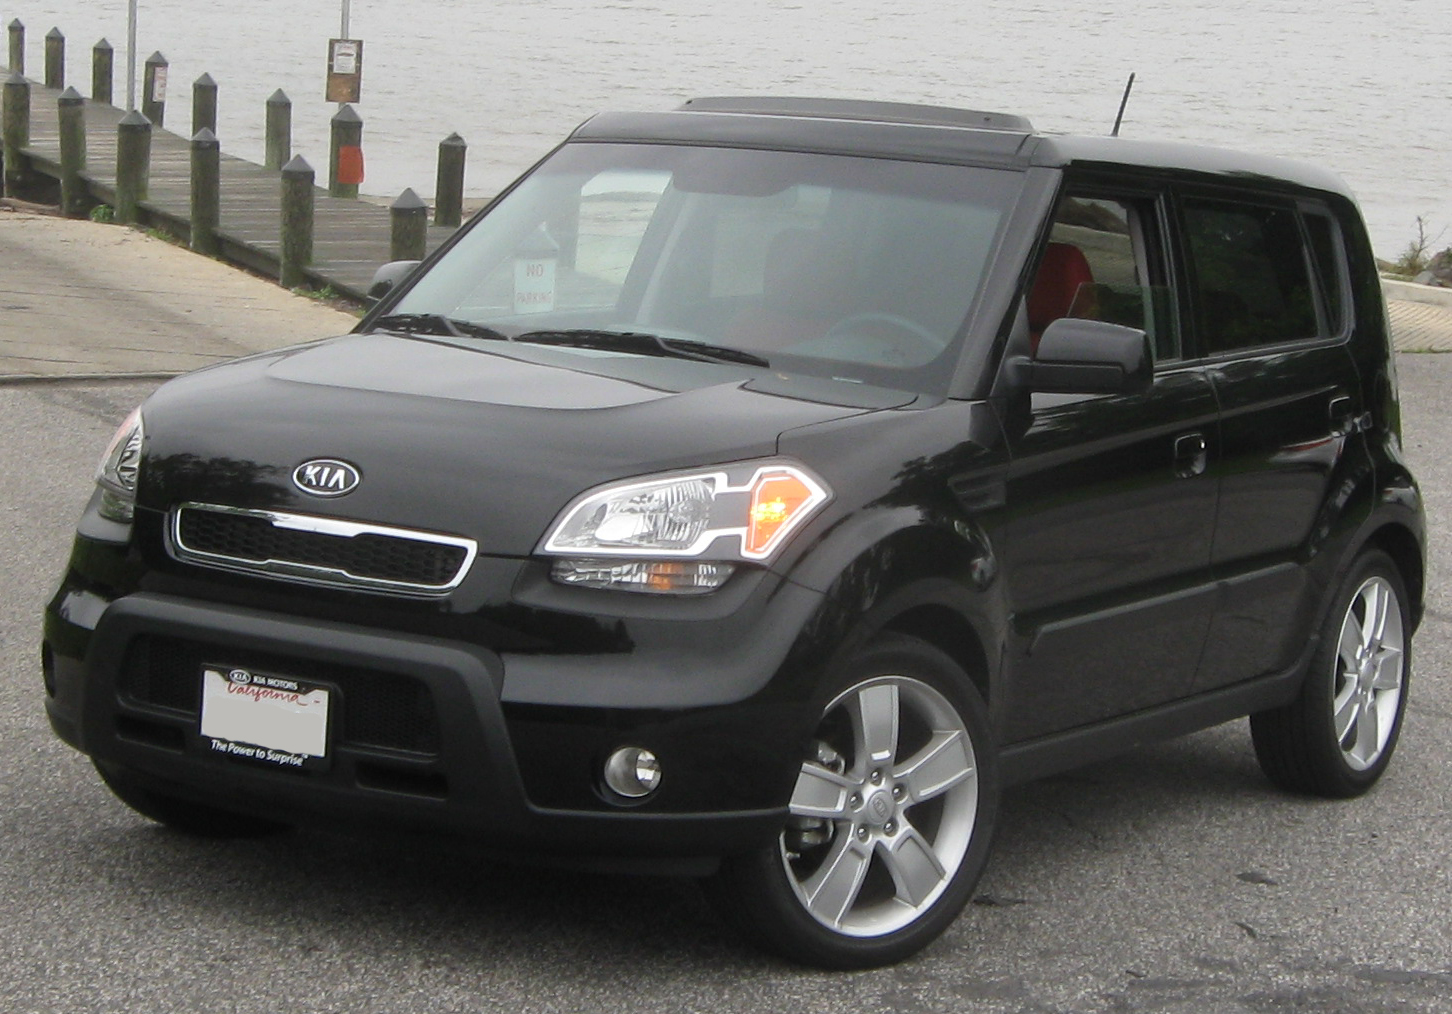 Kia Soul   Stylish Car